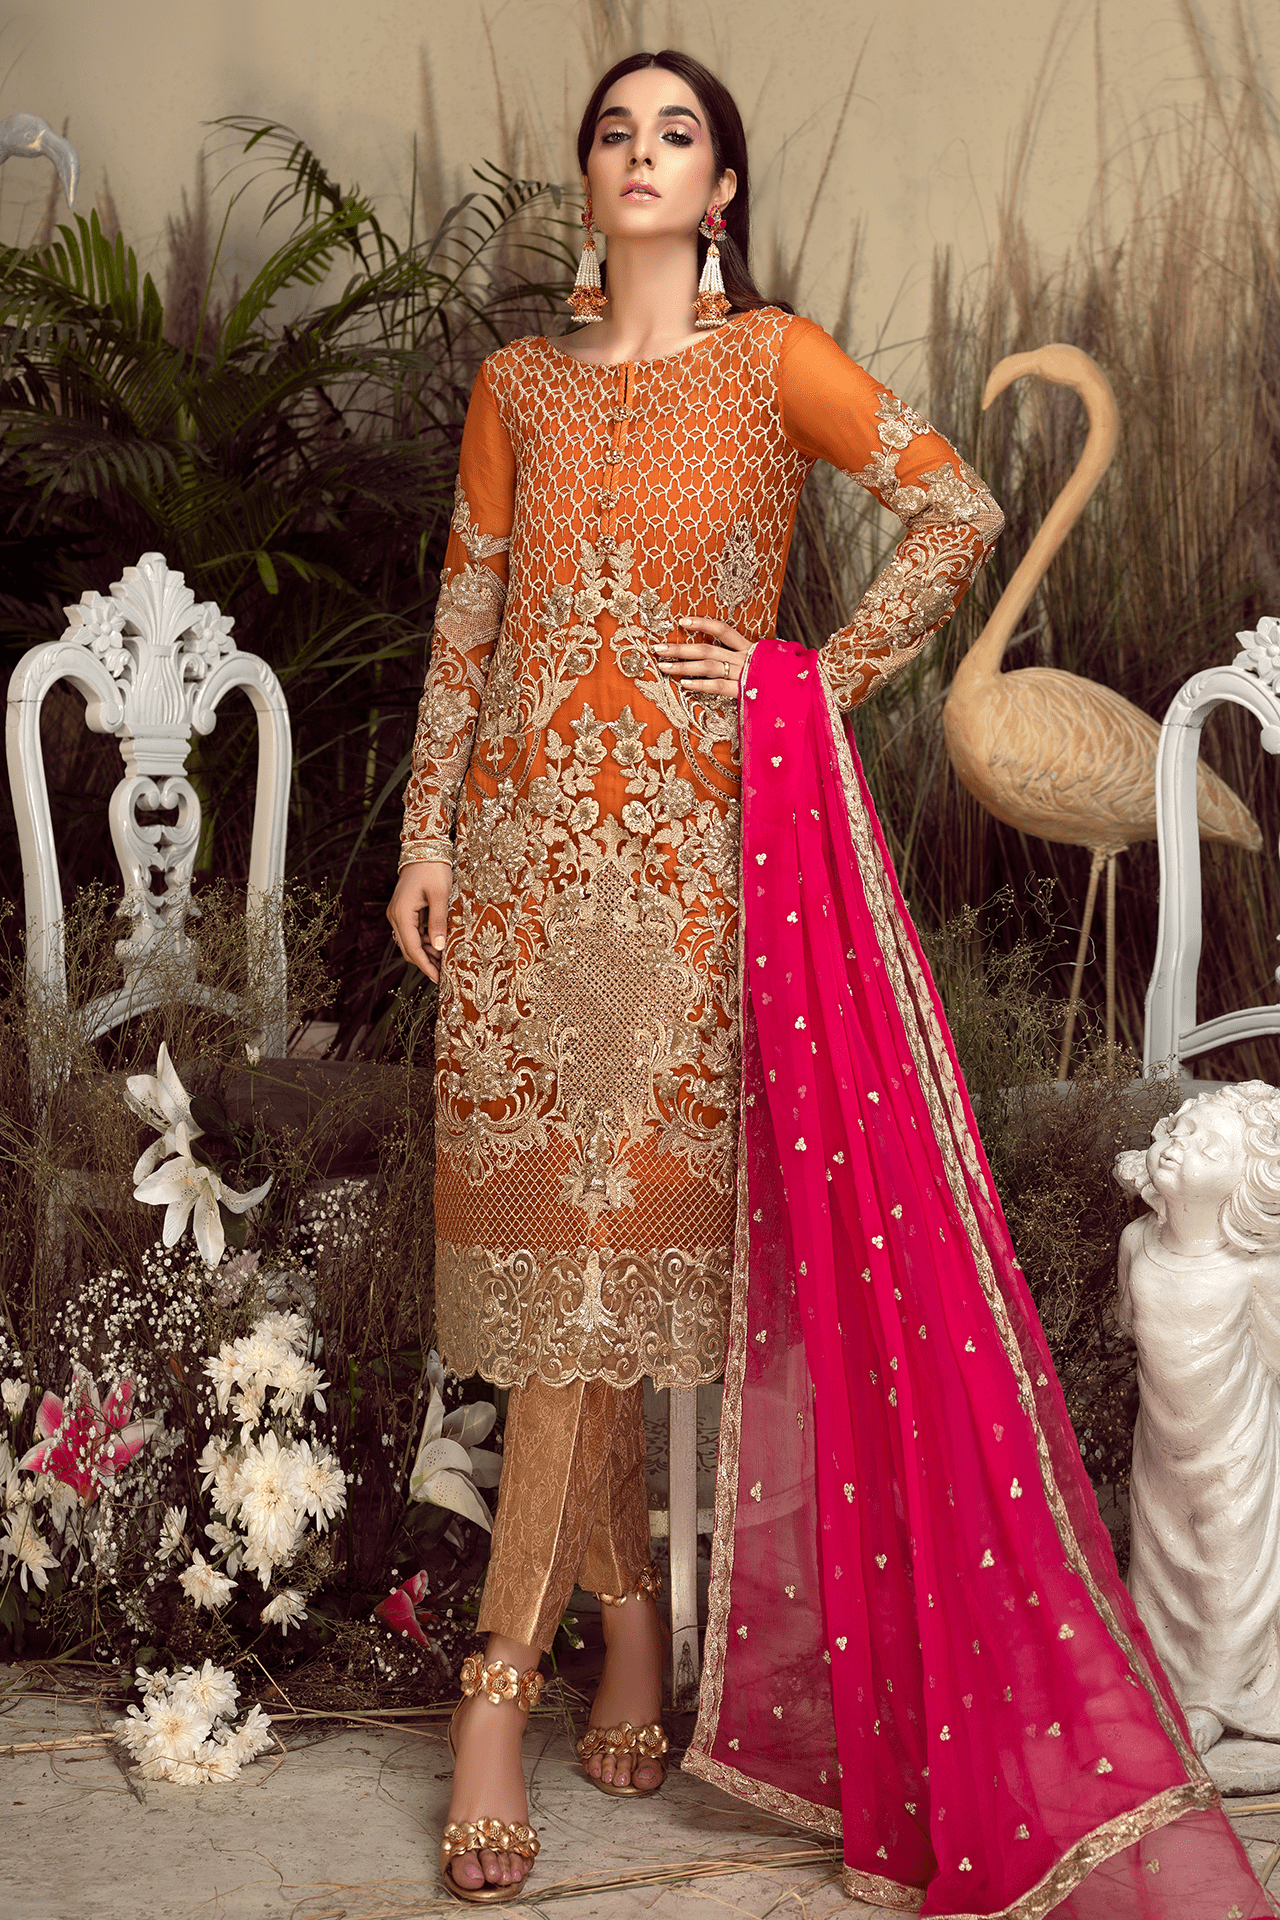 06 Apricot Nectar (Imrozia - Orabelle Chiffon Collection)